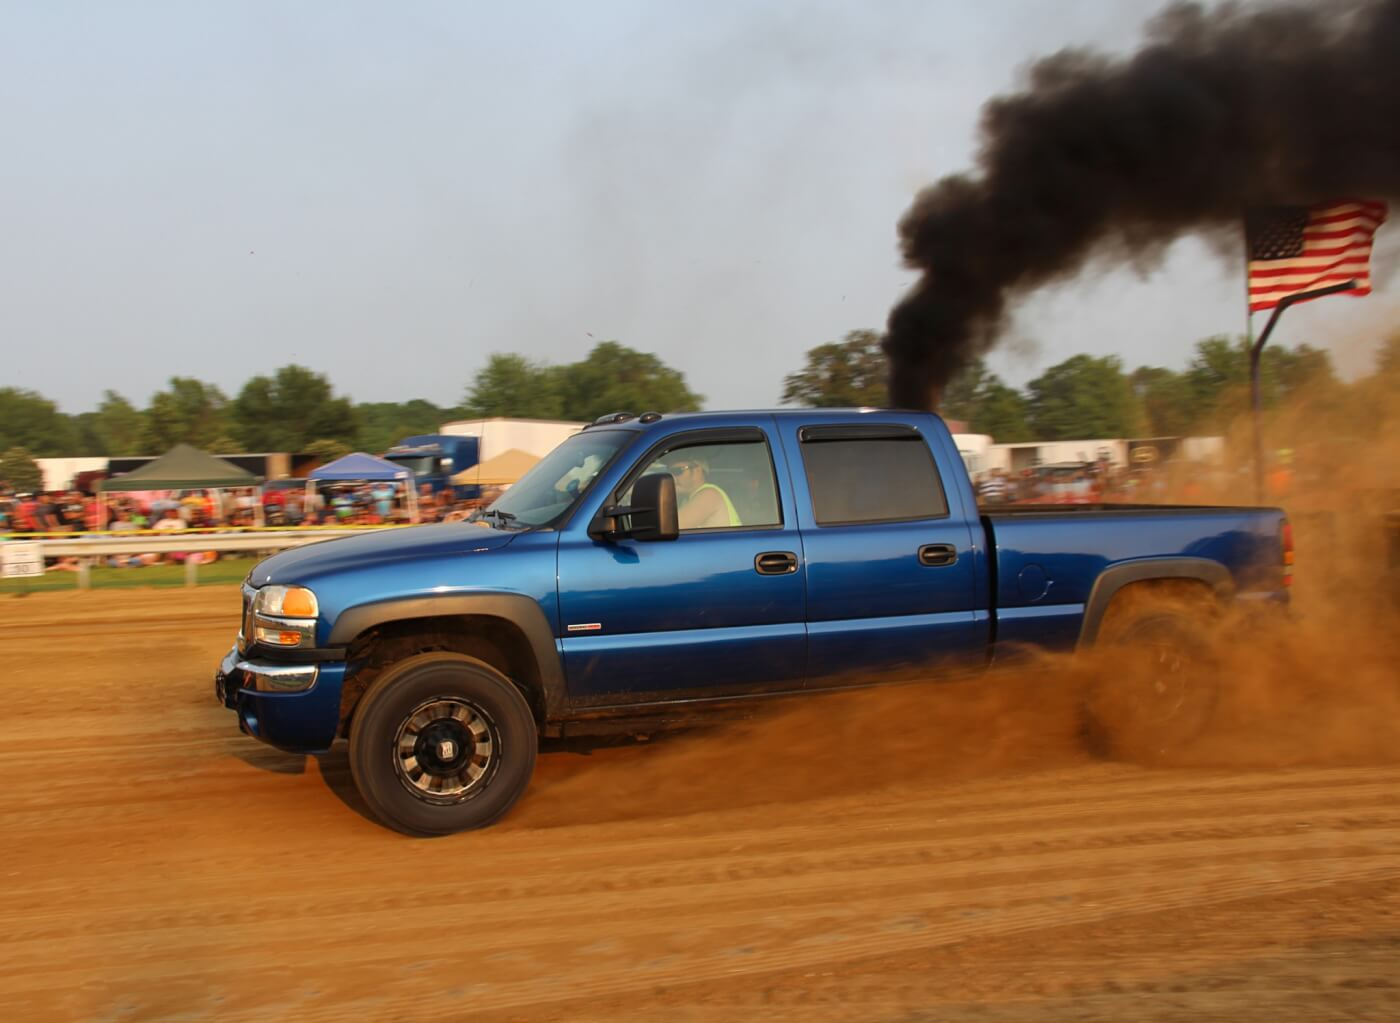 Despite having a serious boost leak, Chance Meyer's GMC still ended up taking Fourth Place in the Work Stock Class. With an S366 feeding a built LB7 Duramax, and 100-percent over injectors combined with dual CP3s fueling it, this truck could've easily been the frontrunner.